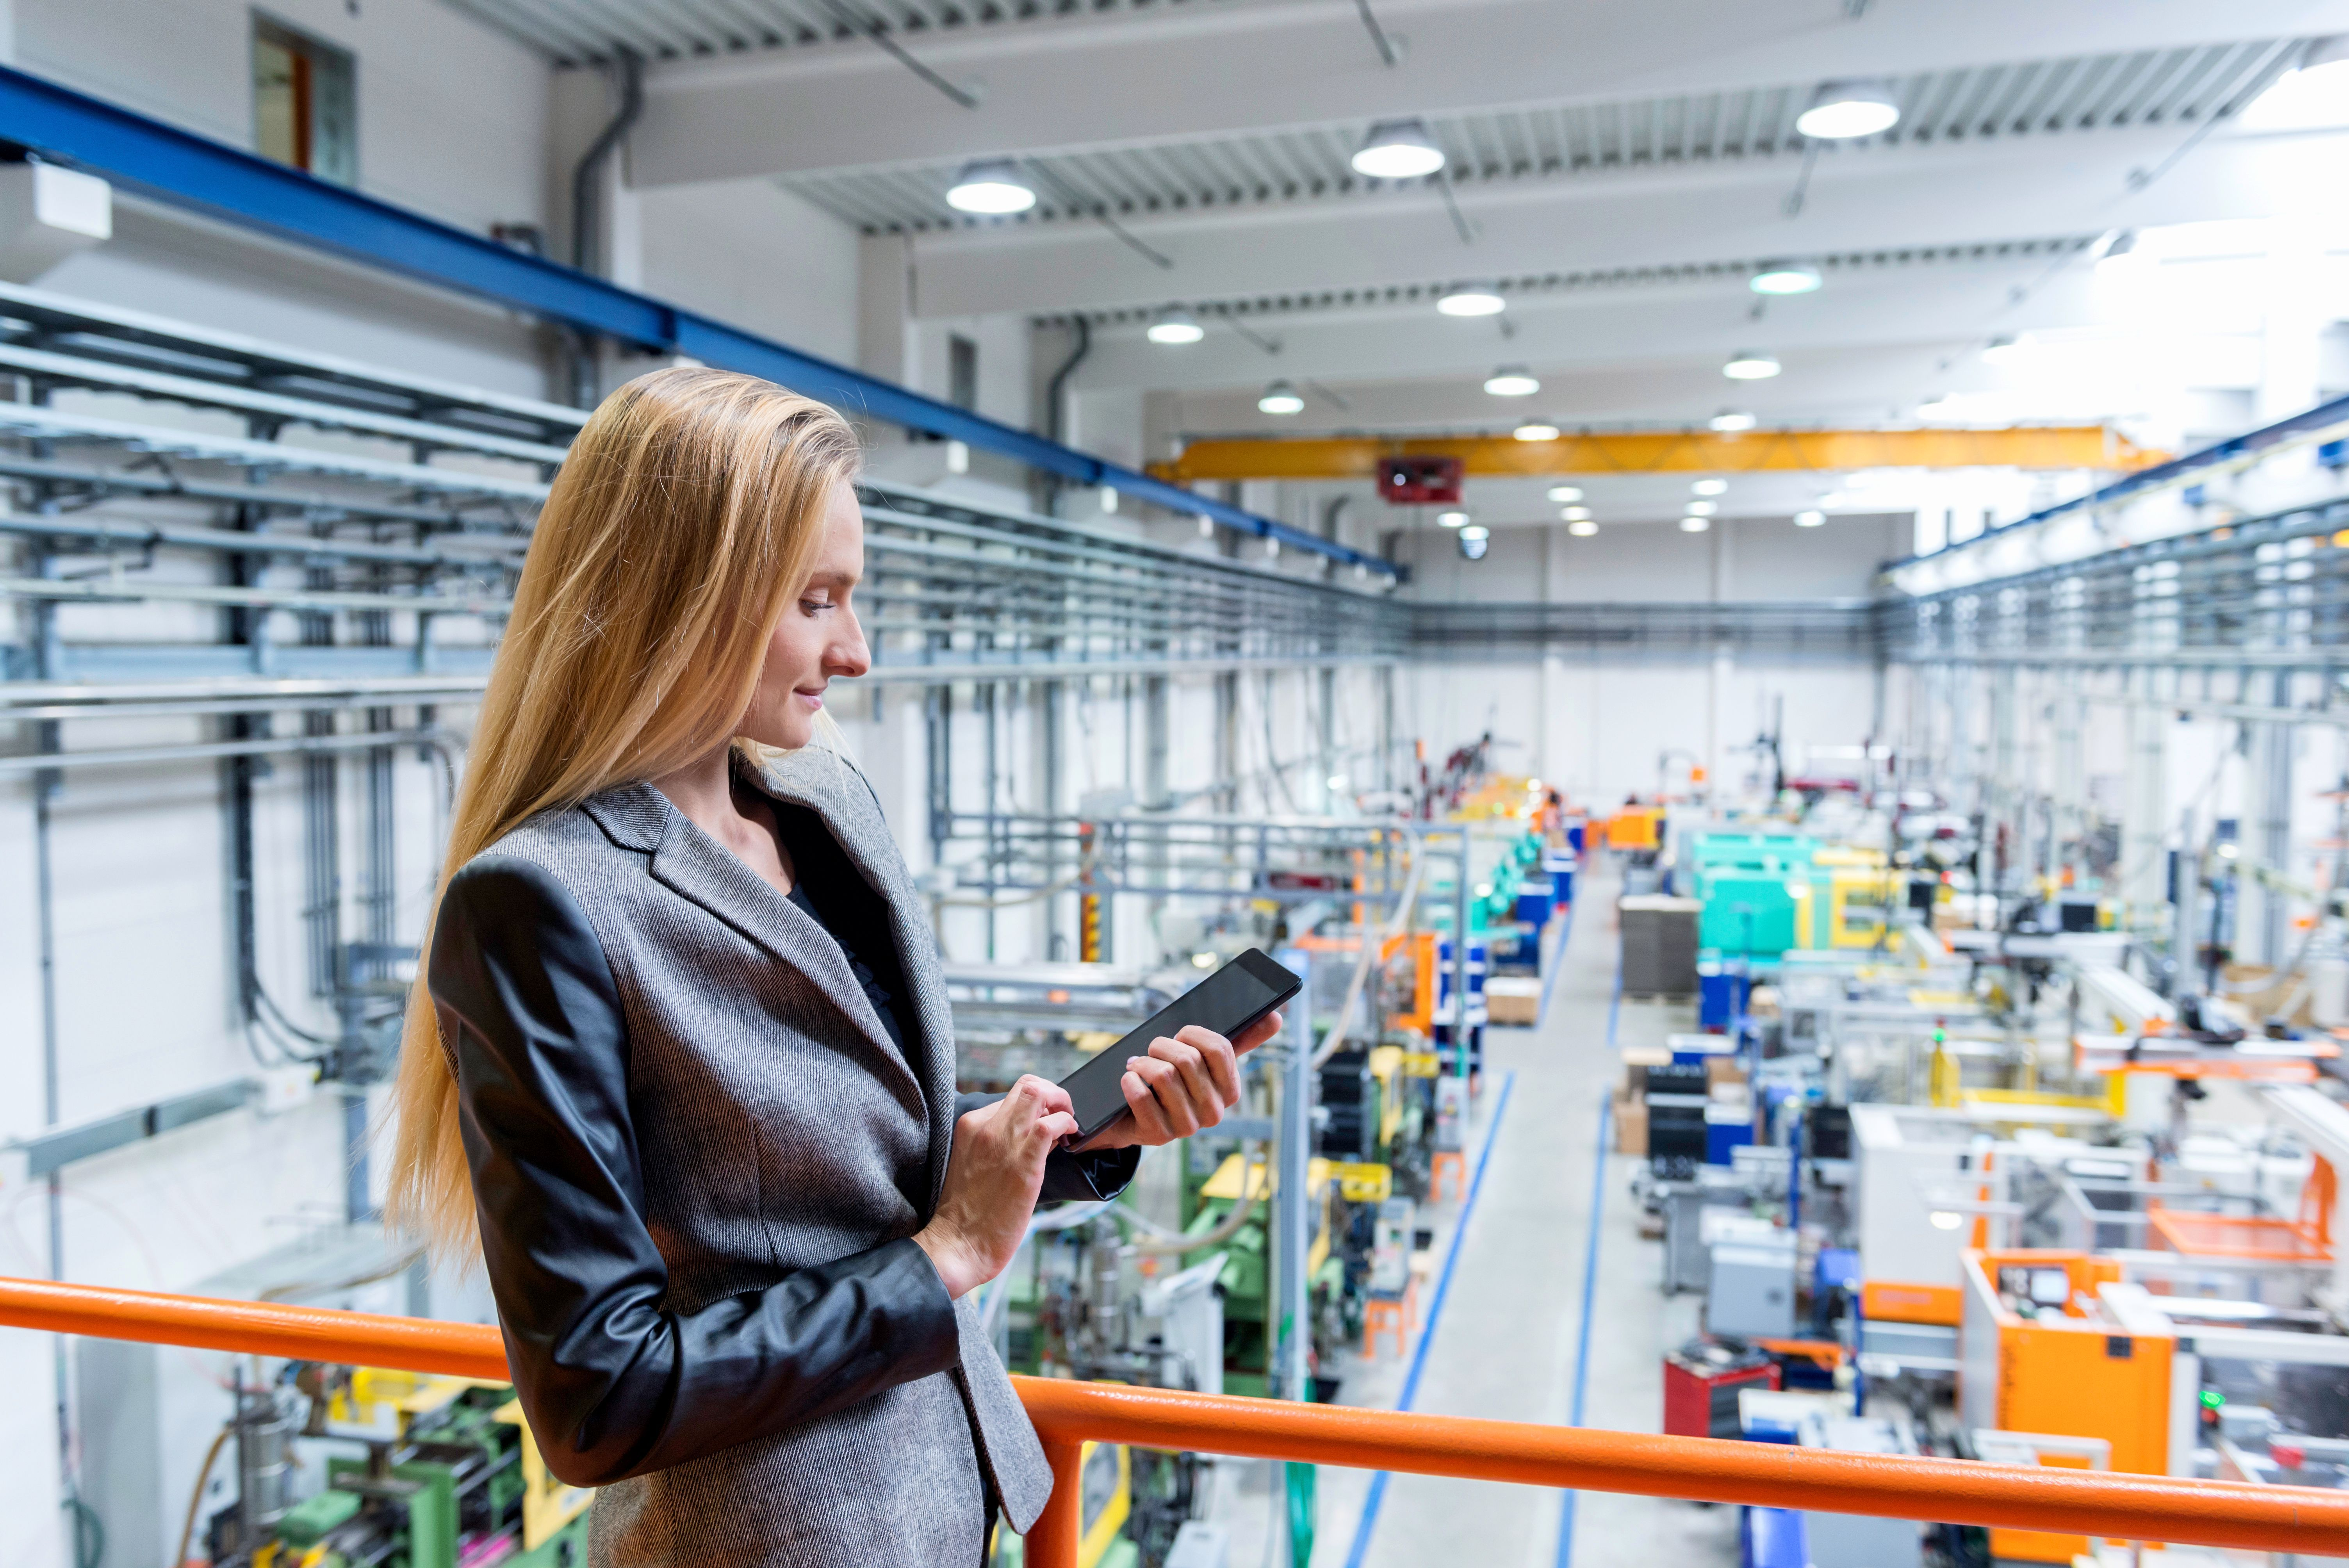 Professional female worker with tablet in futuristic factory